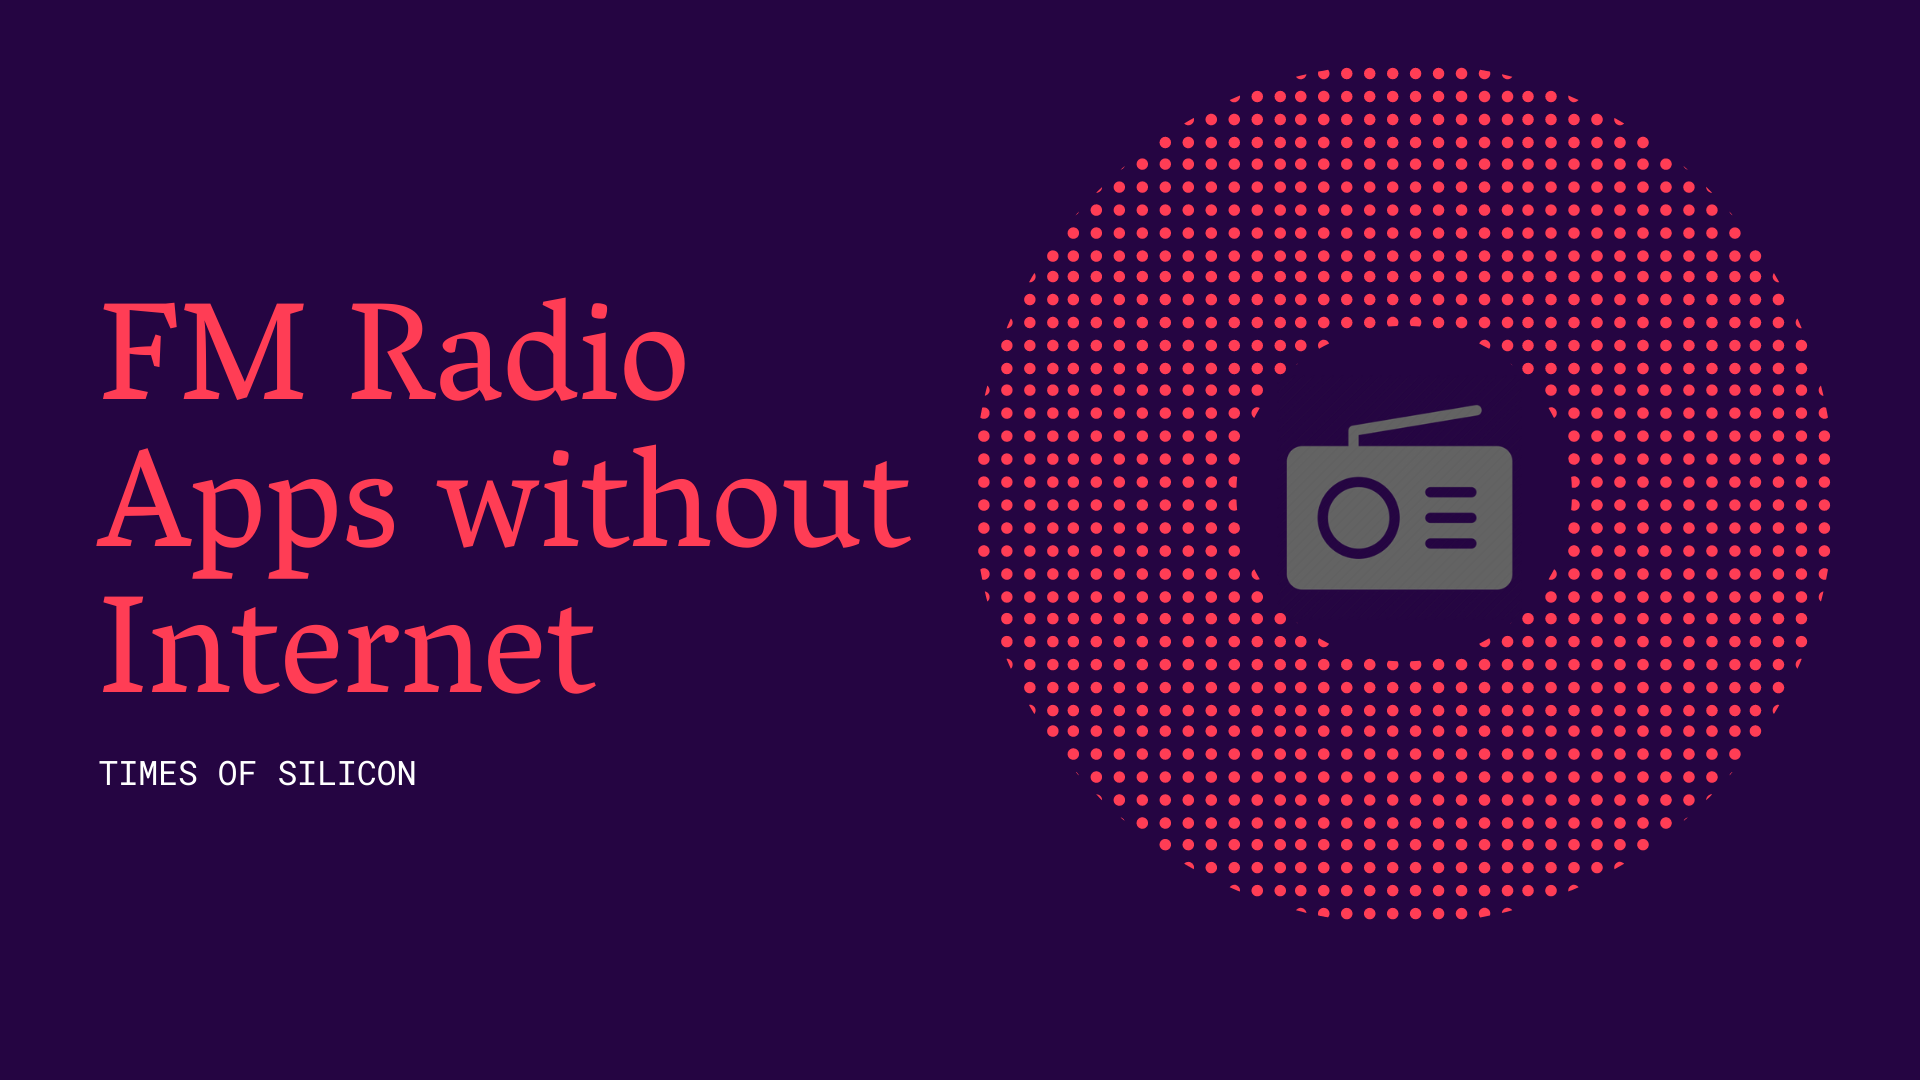 FM Radio Apps without Internet